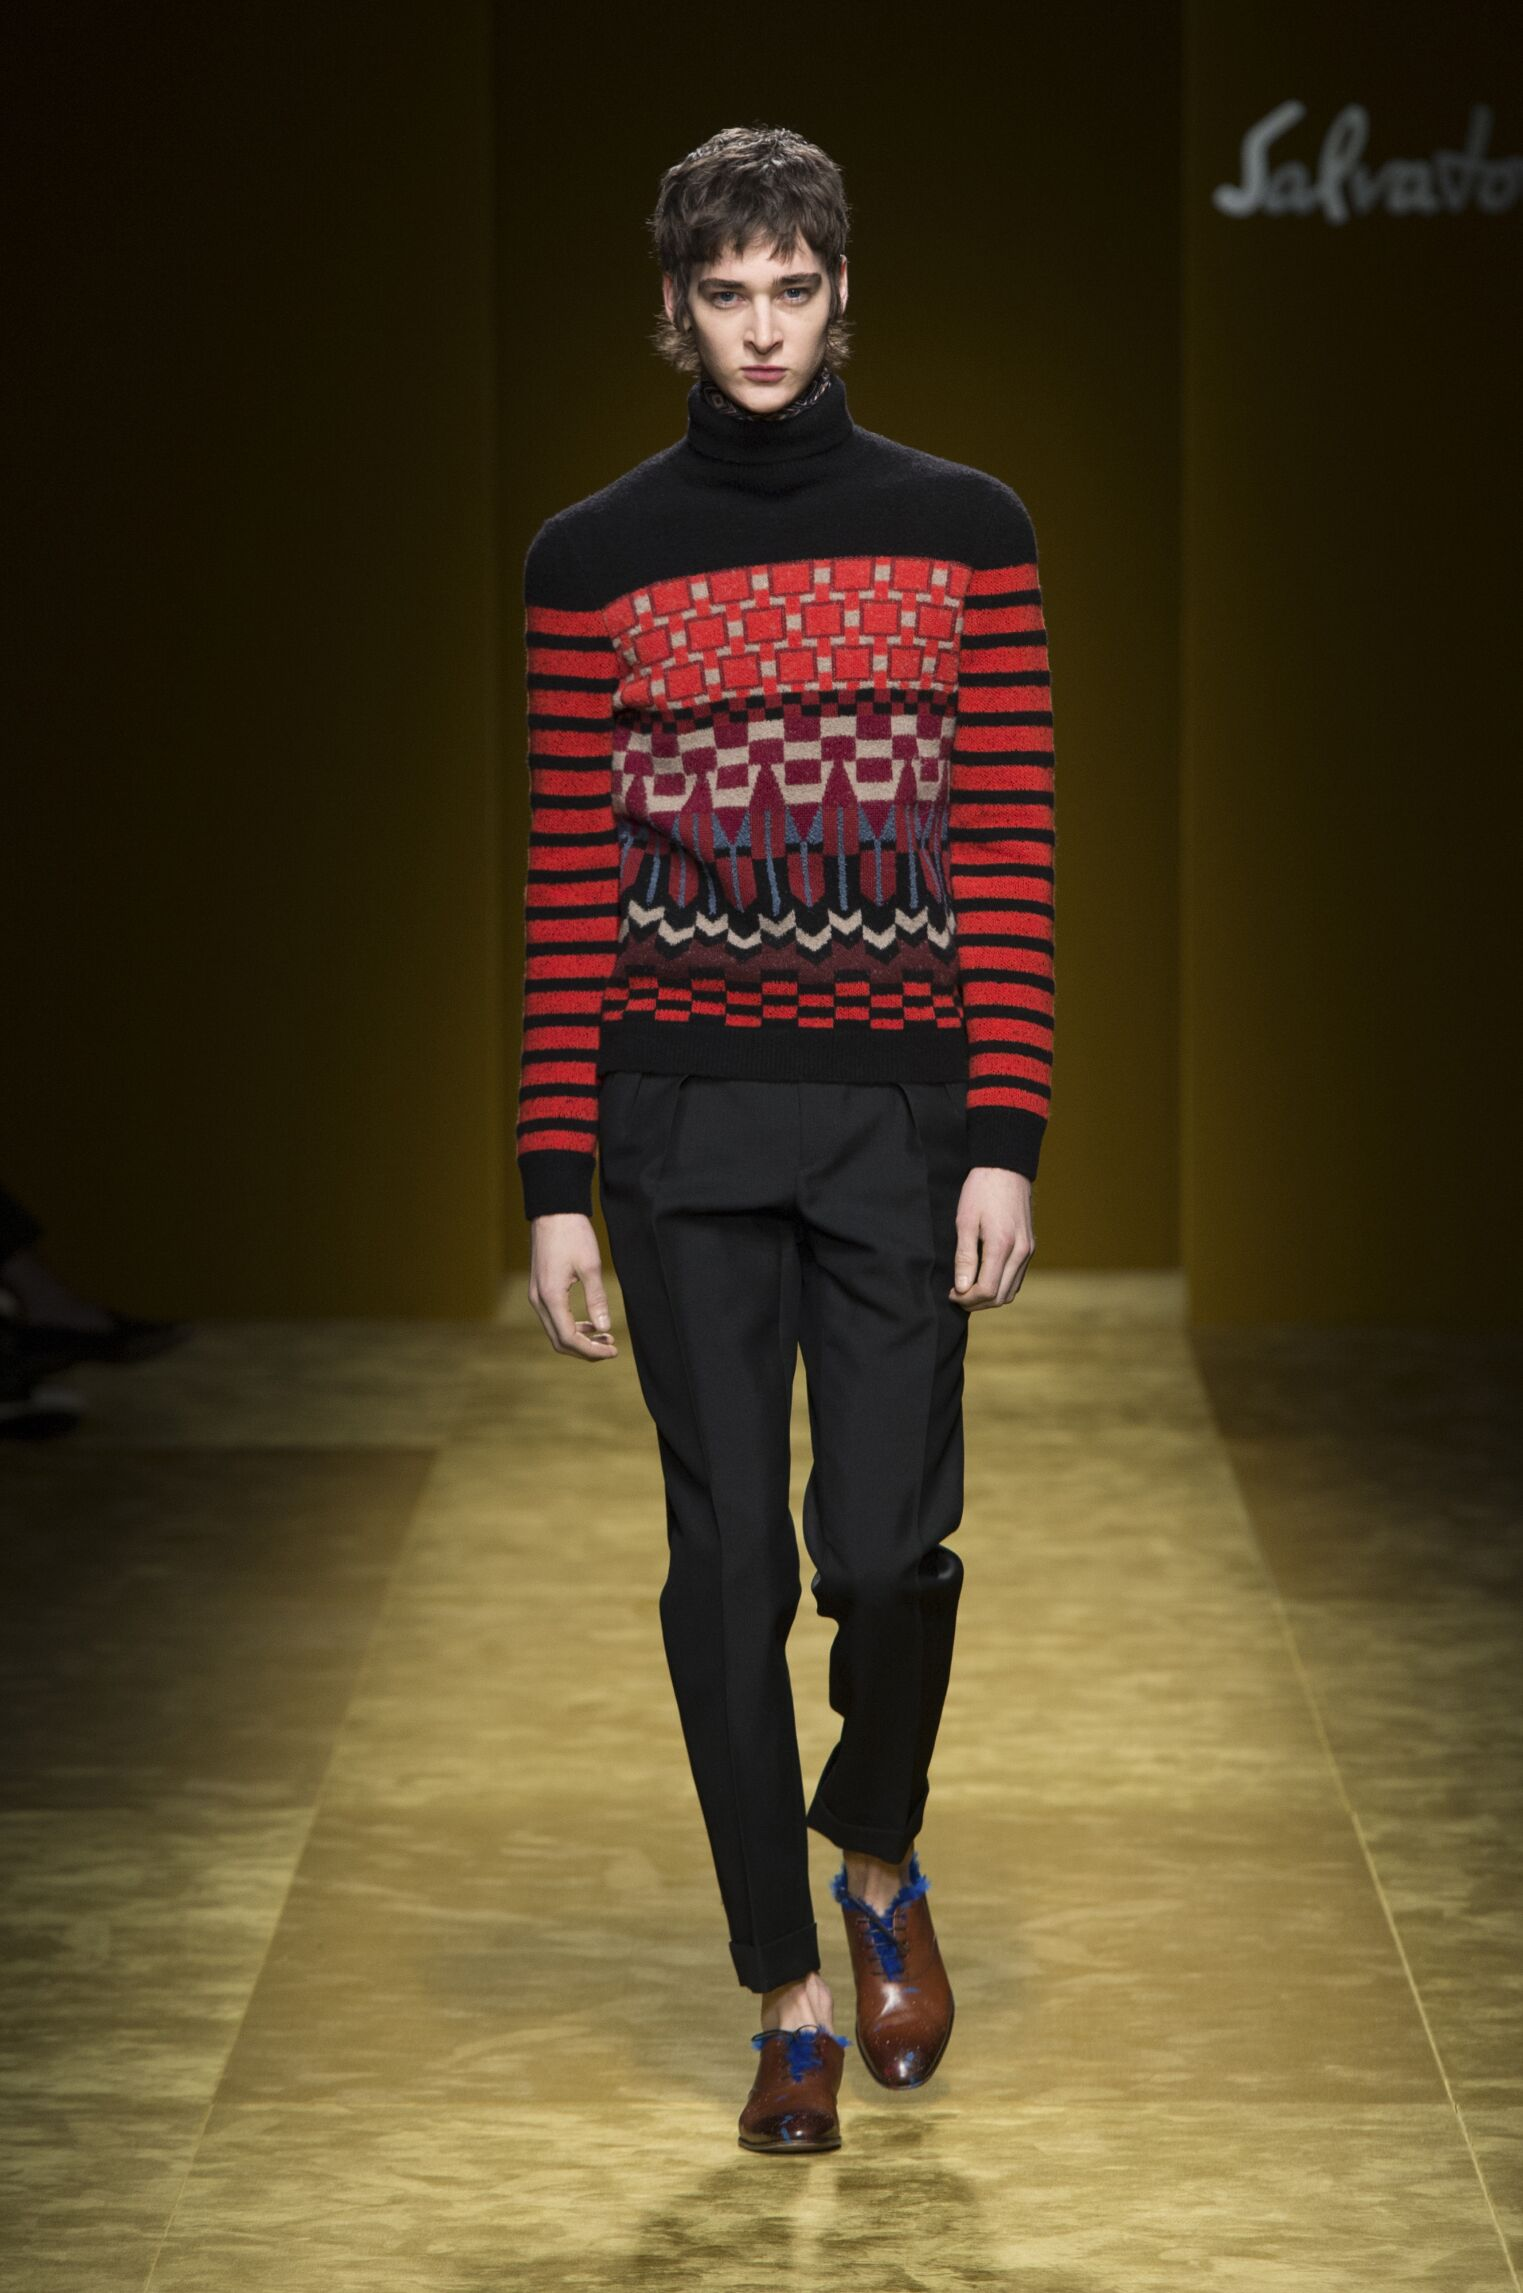 2016 Salvatore Ferragamo Winter Catwalk